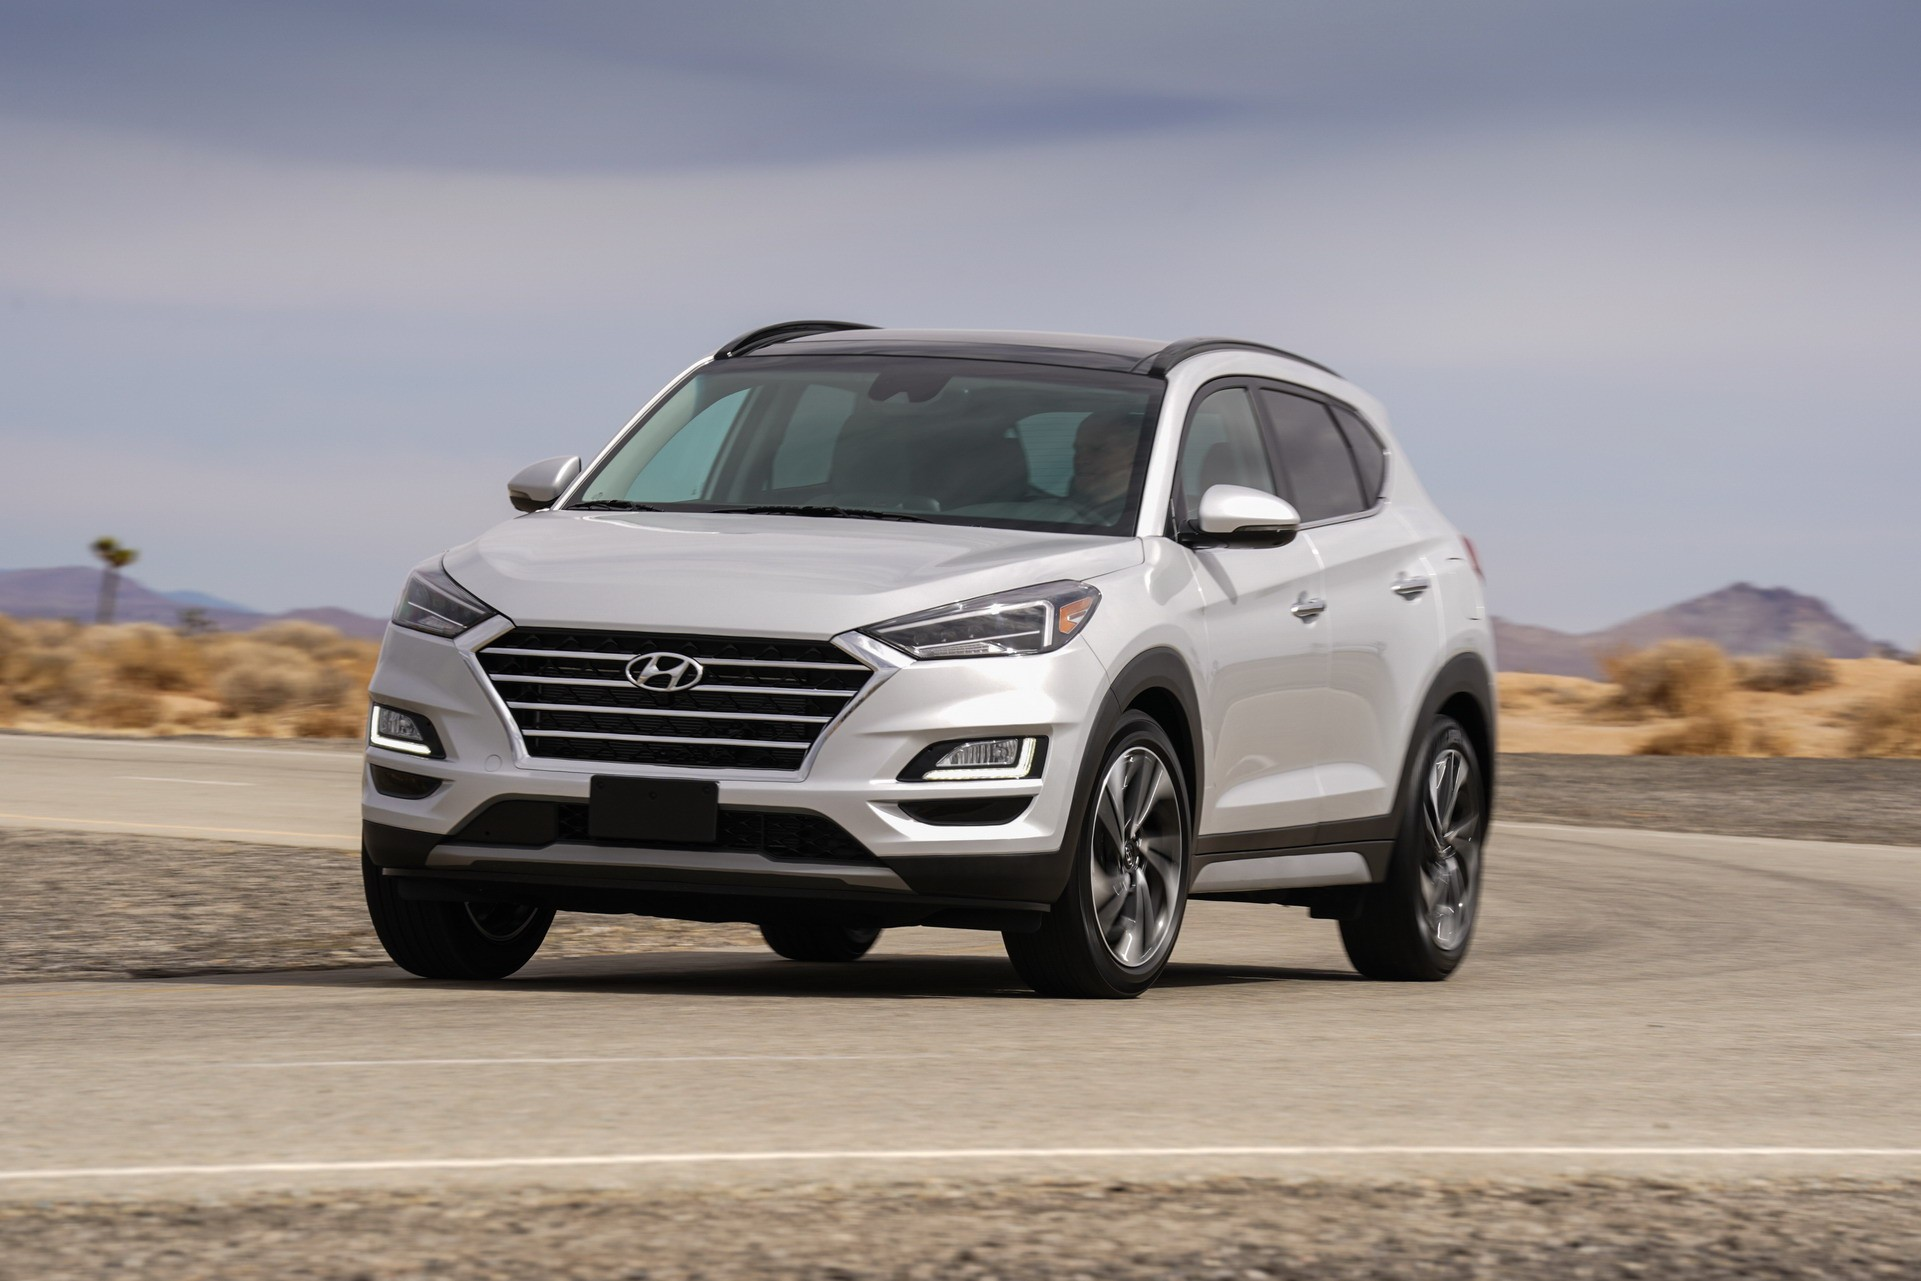 2019 Hyundai Tucson Debuts With Refreshed Face, Drops 1.6 ...